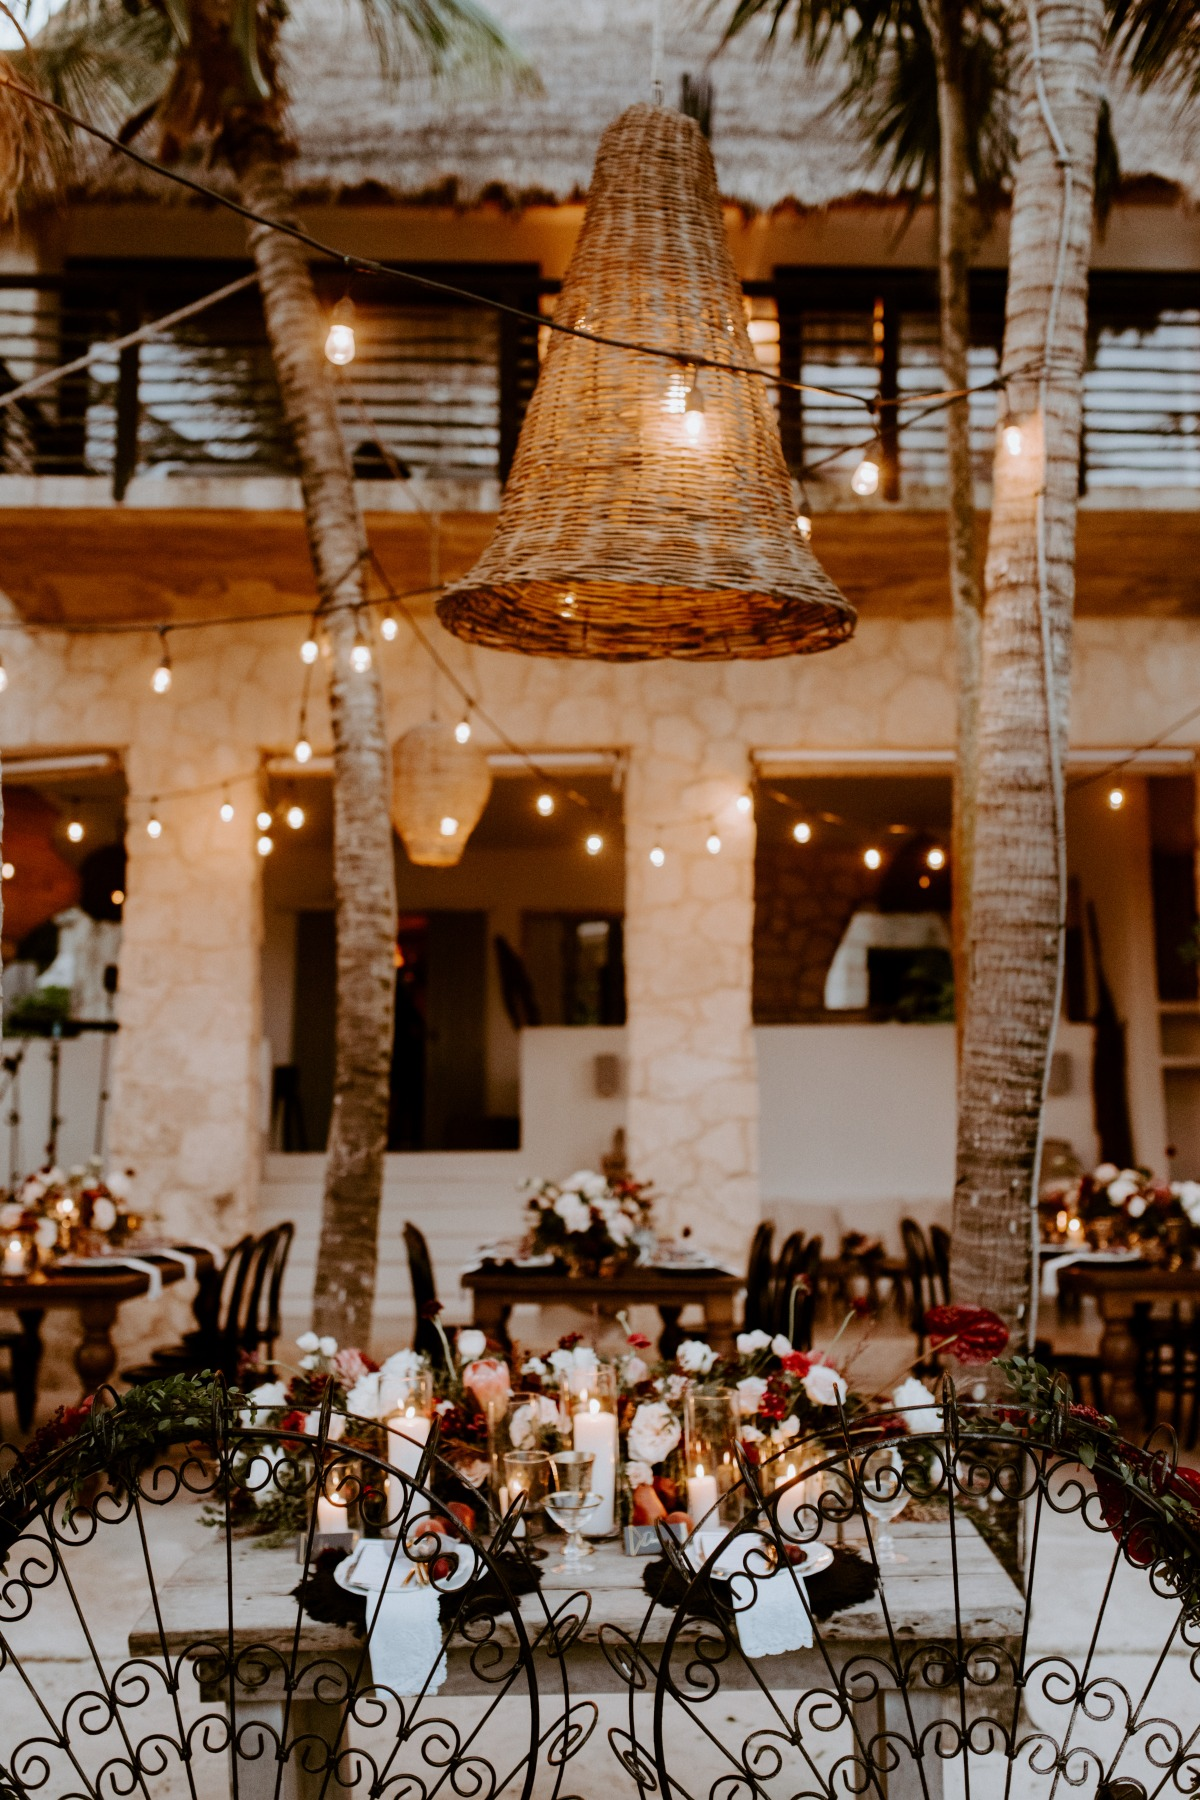 Can You Feel The Love, Tulum?